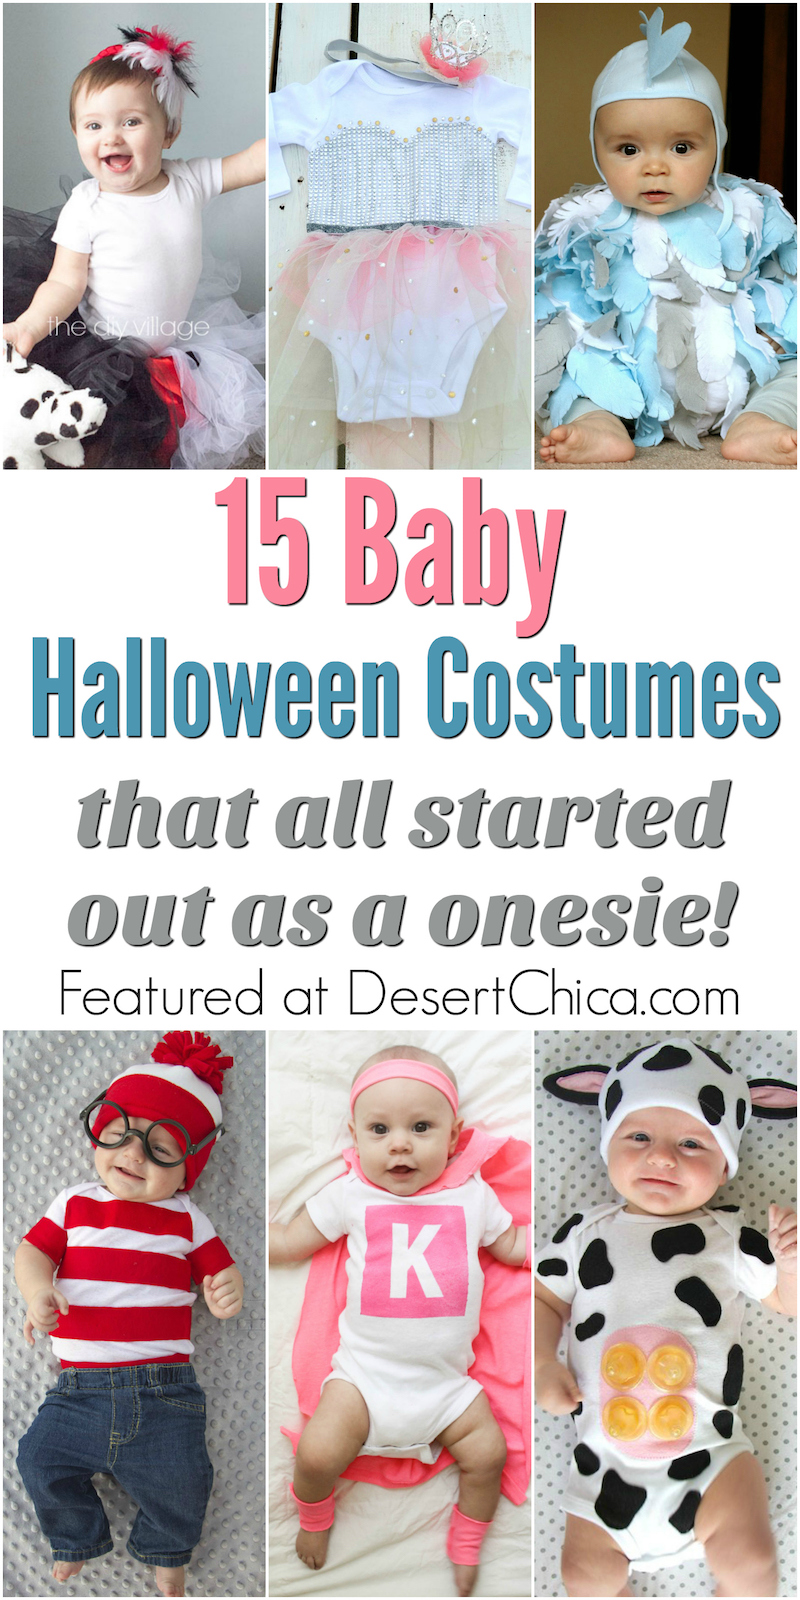 Every awesome costume starts with a great base, for babies, a onesie makes the most sense. Check out all these adorable onesie costumes for babies